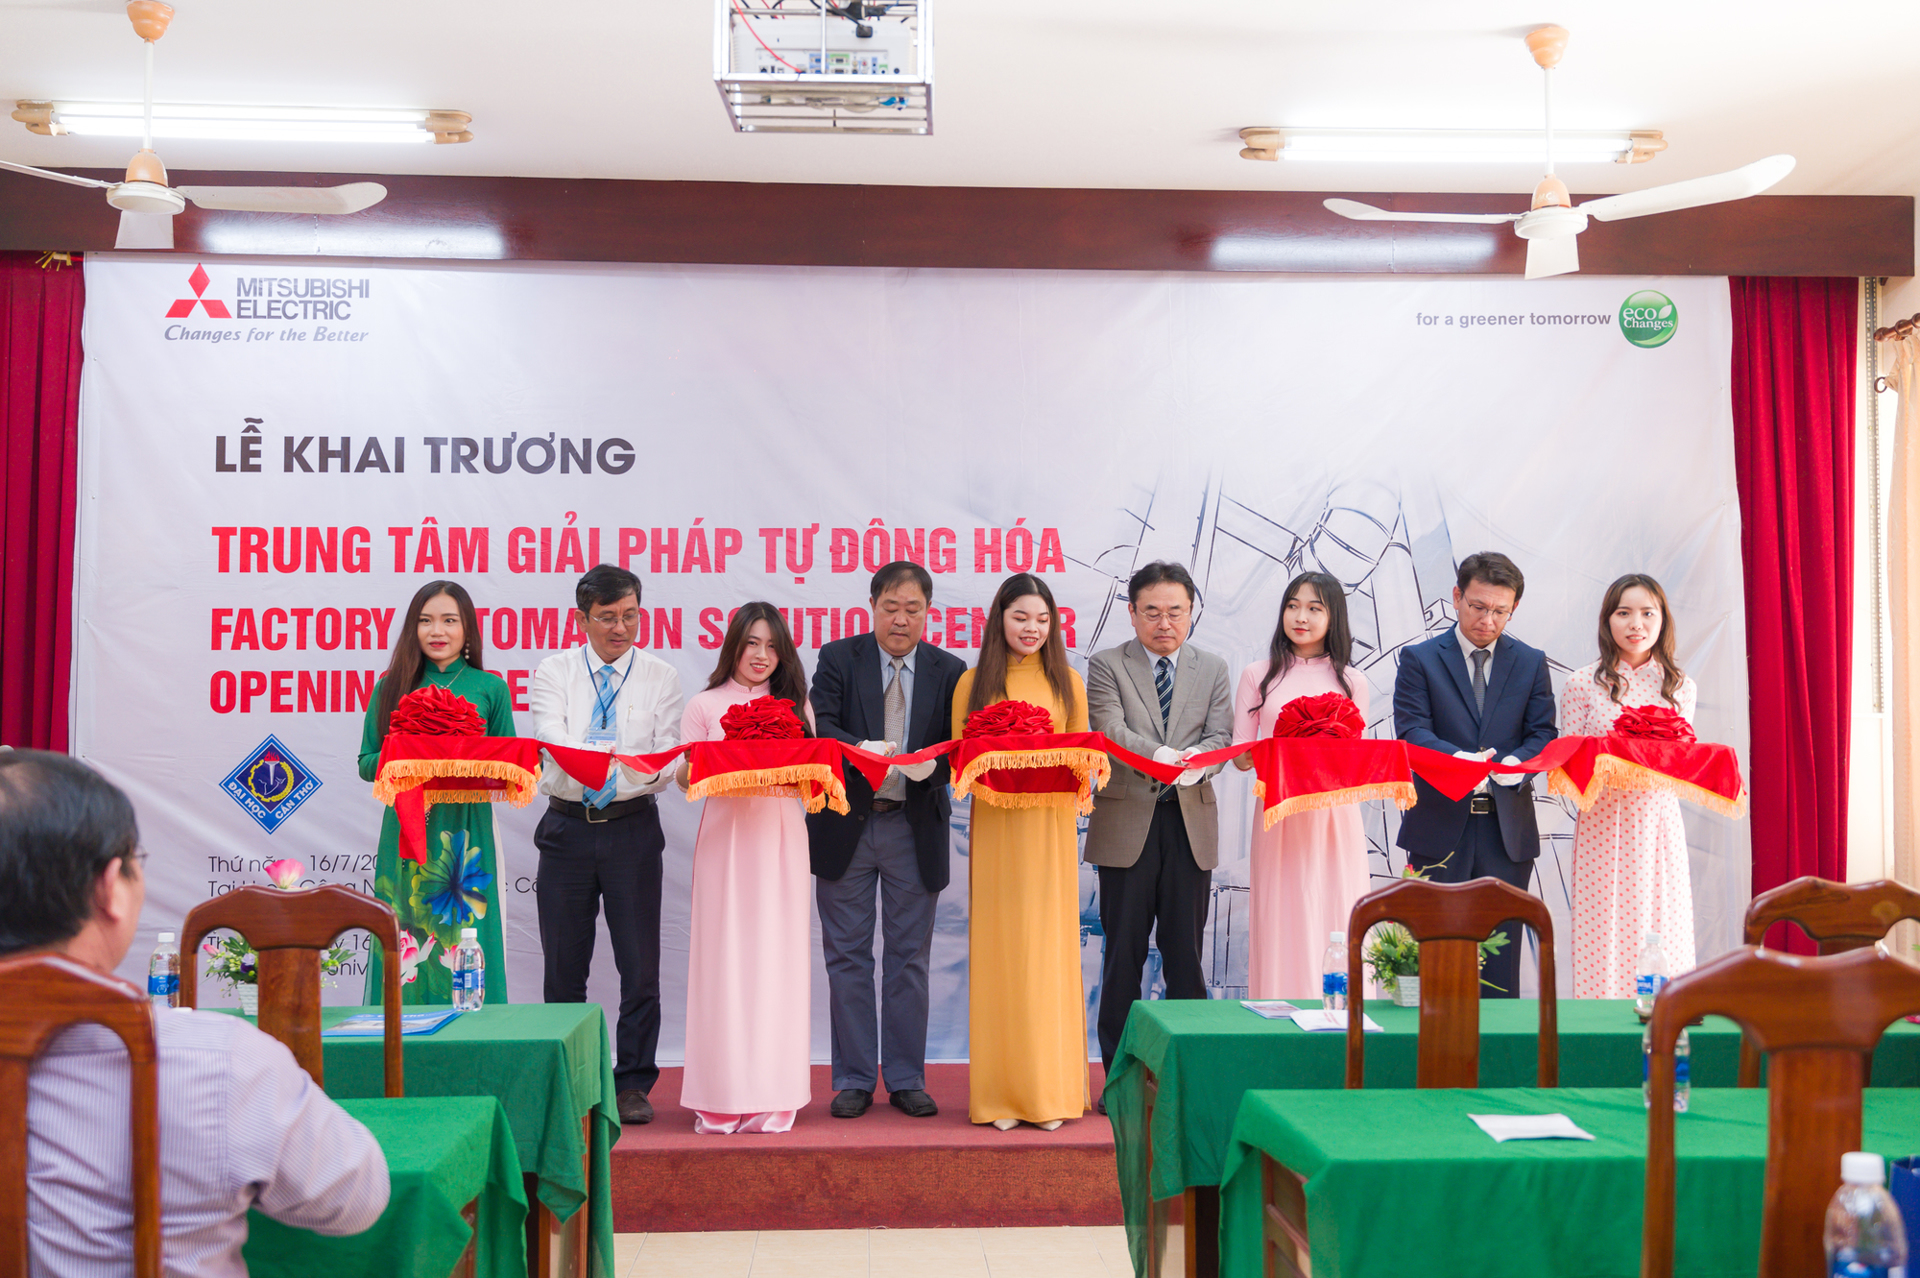 Mitsubishi Electric Vietnam launched the Factory Automation Solutions Center at Can Tho University